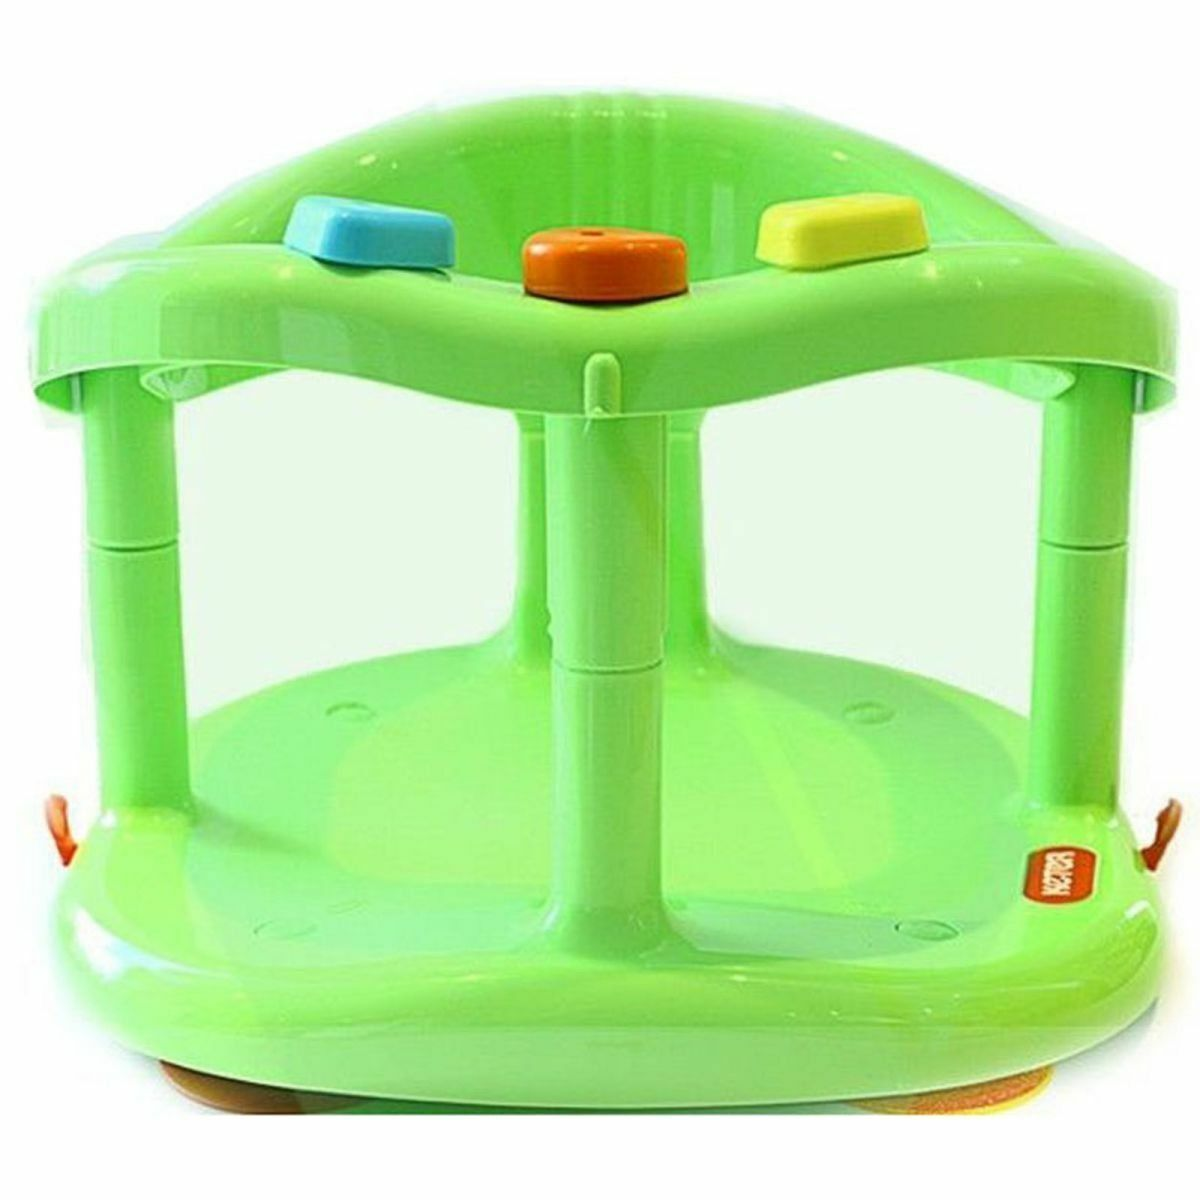 Keter Baby Bath Seats for sale | eBay